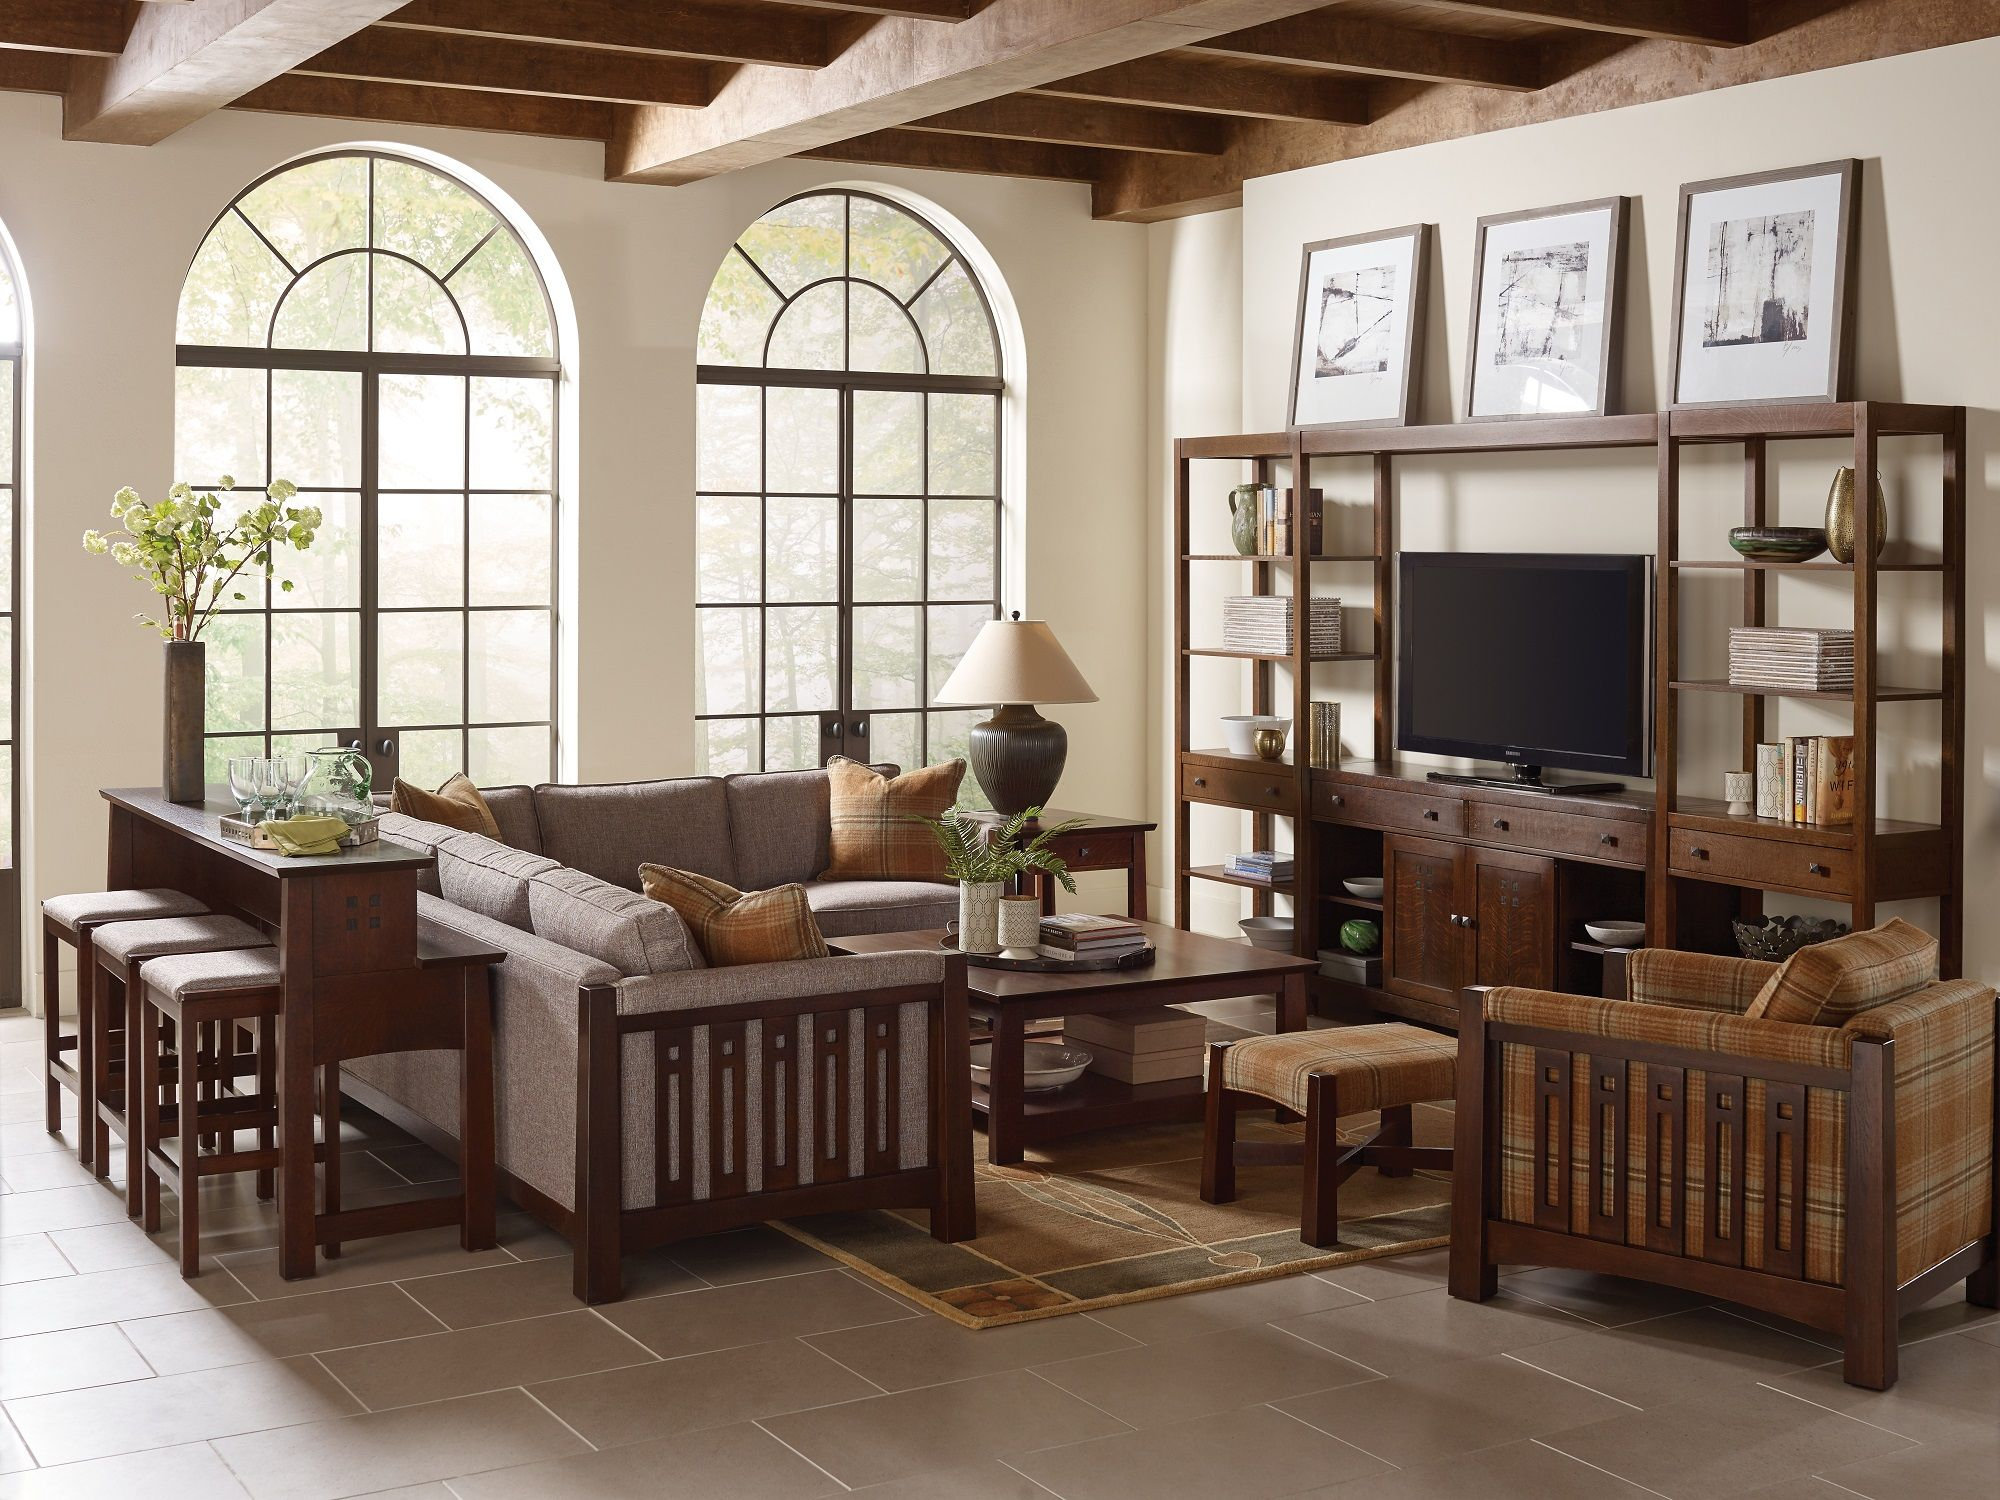 This Stickley Highlands Sectional Sofa blends the Mission style